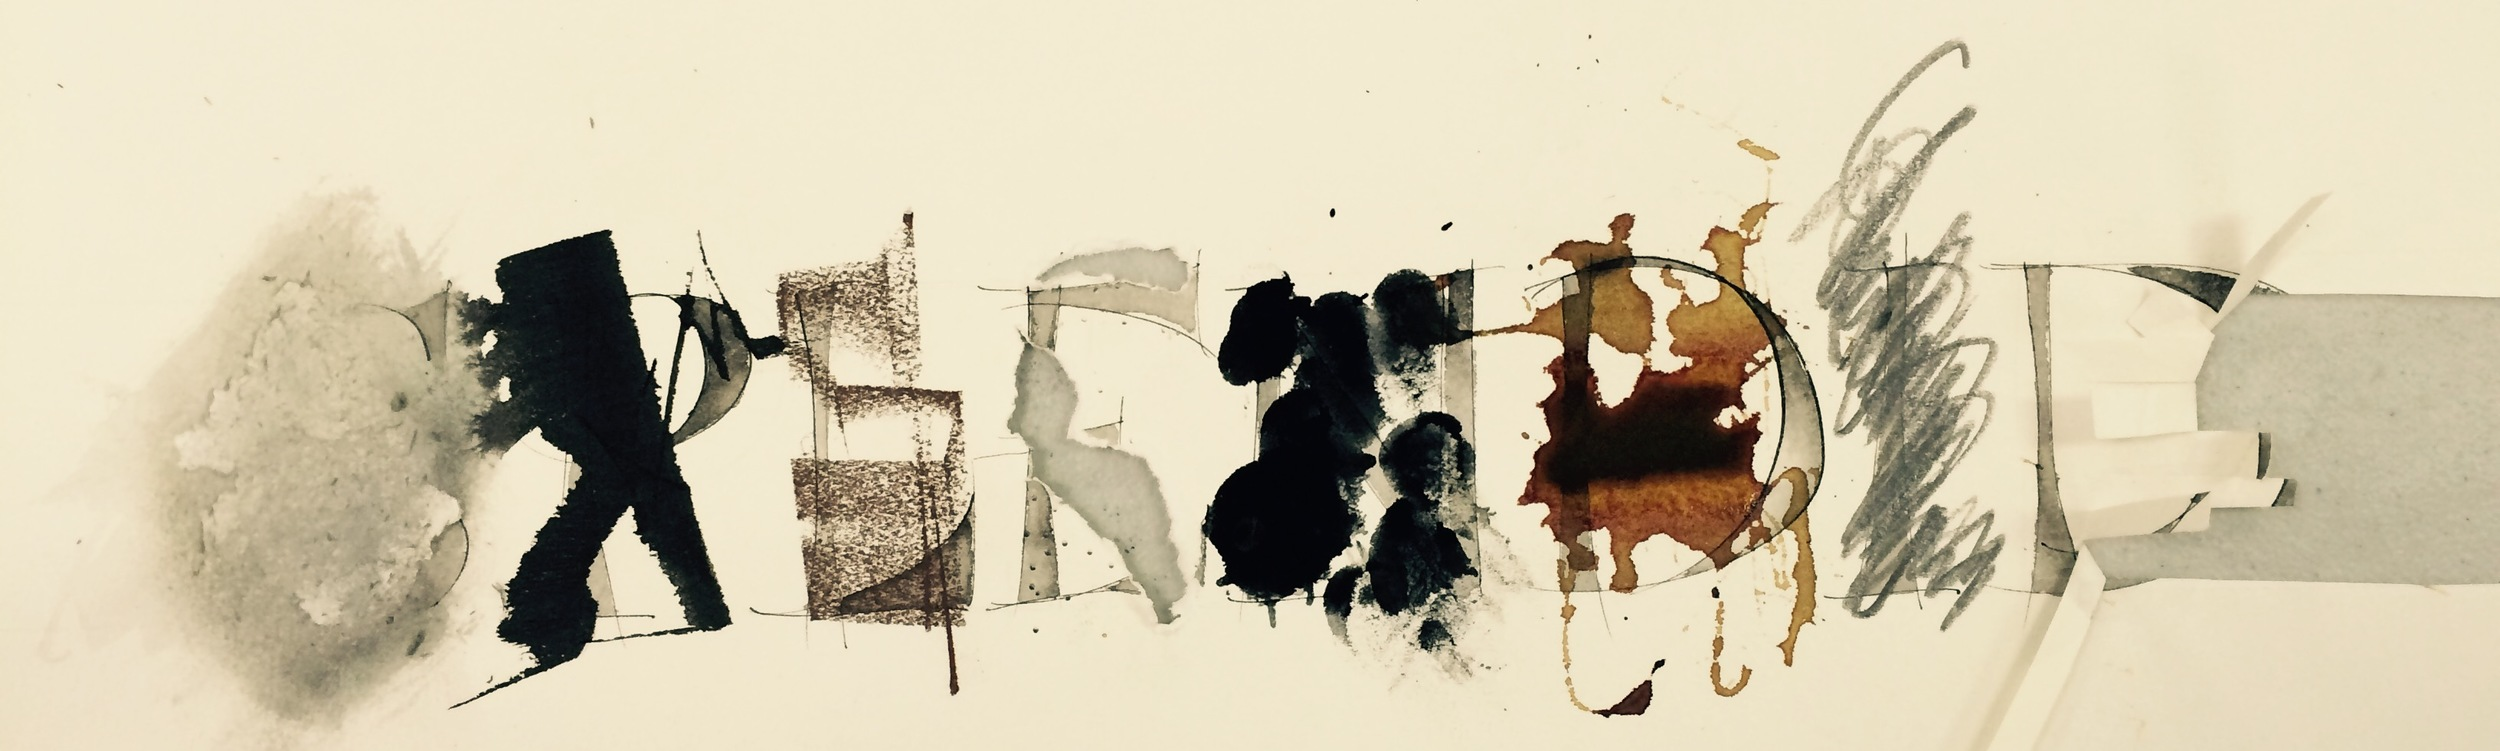 Letters Destroyed, Anne Cowie